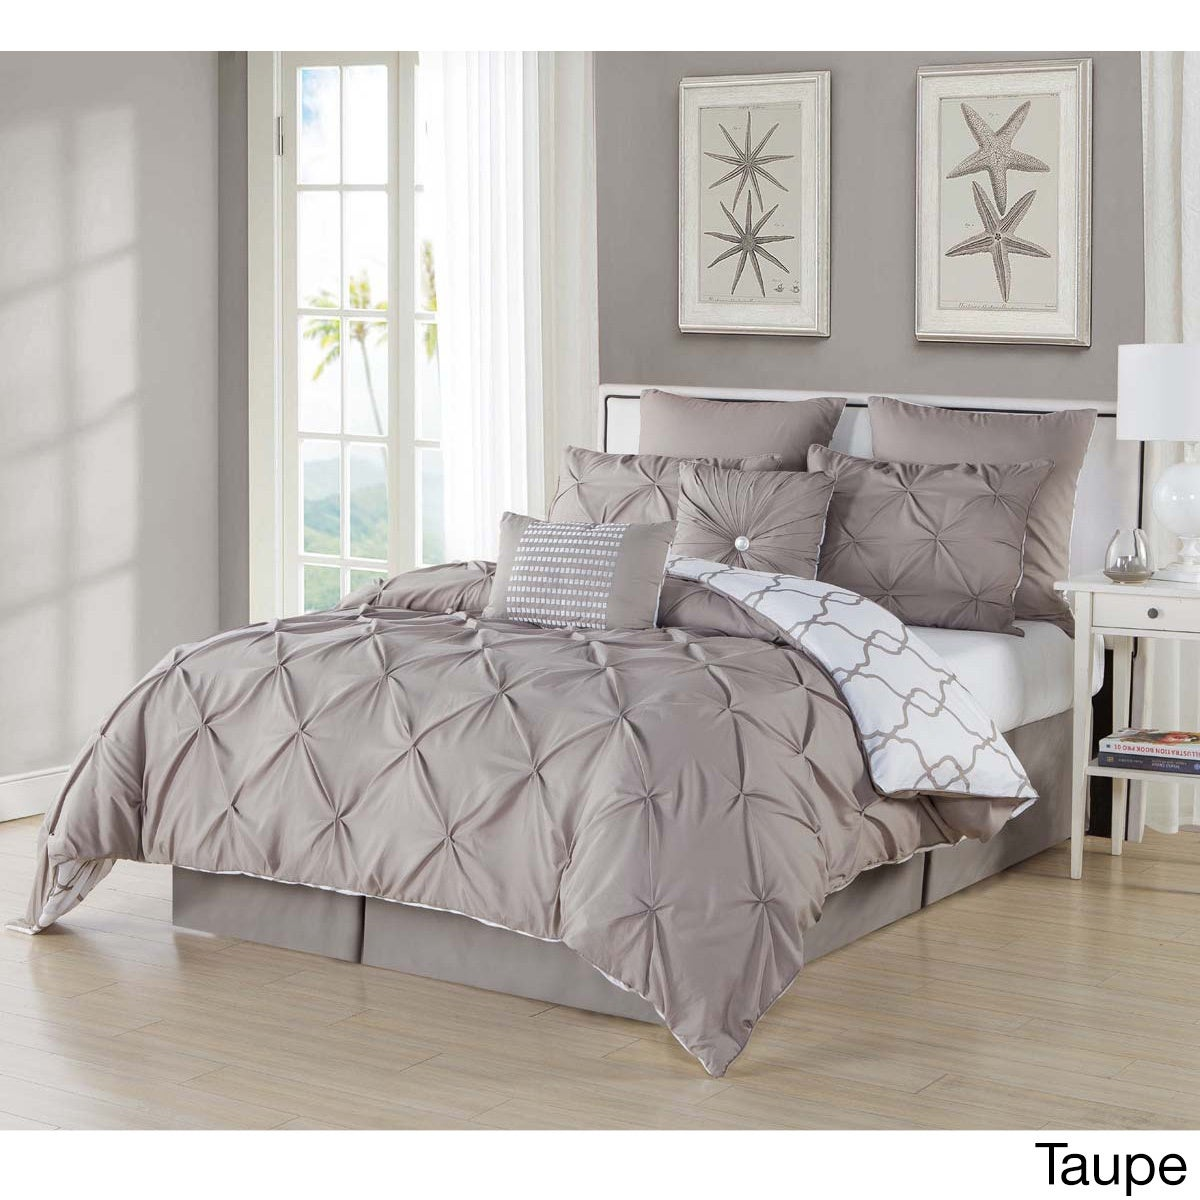 queen aberdeen quilts collection comforter taupe antique homes bedroom and inspirational set country comforters gardens bedding marmon juliet amaryllis better quilt sets ideas floral jewel